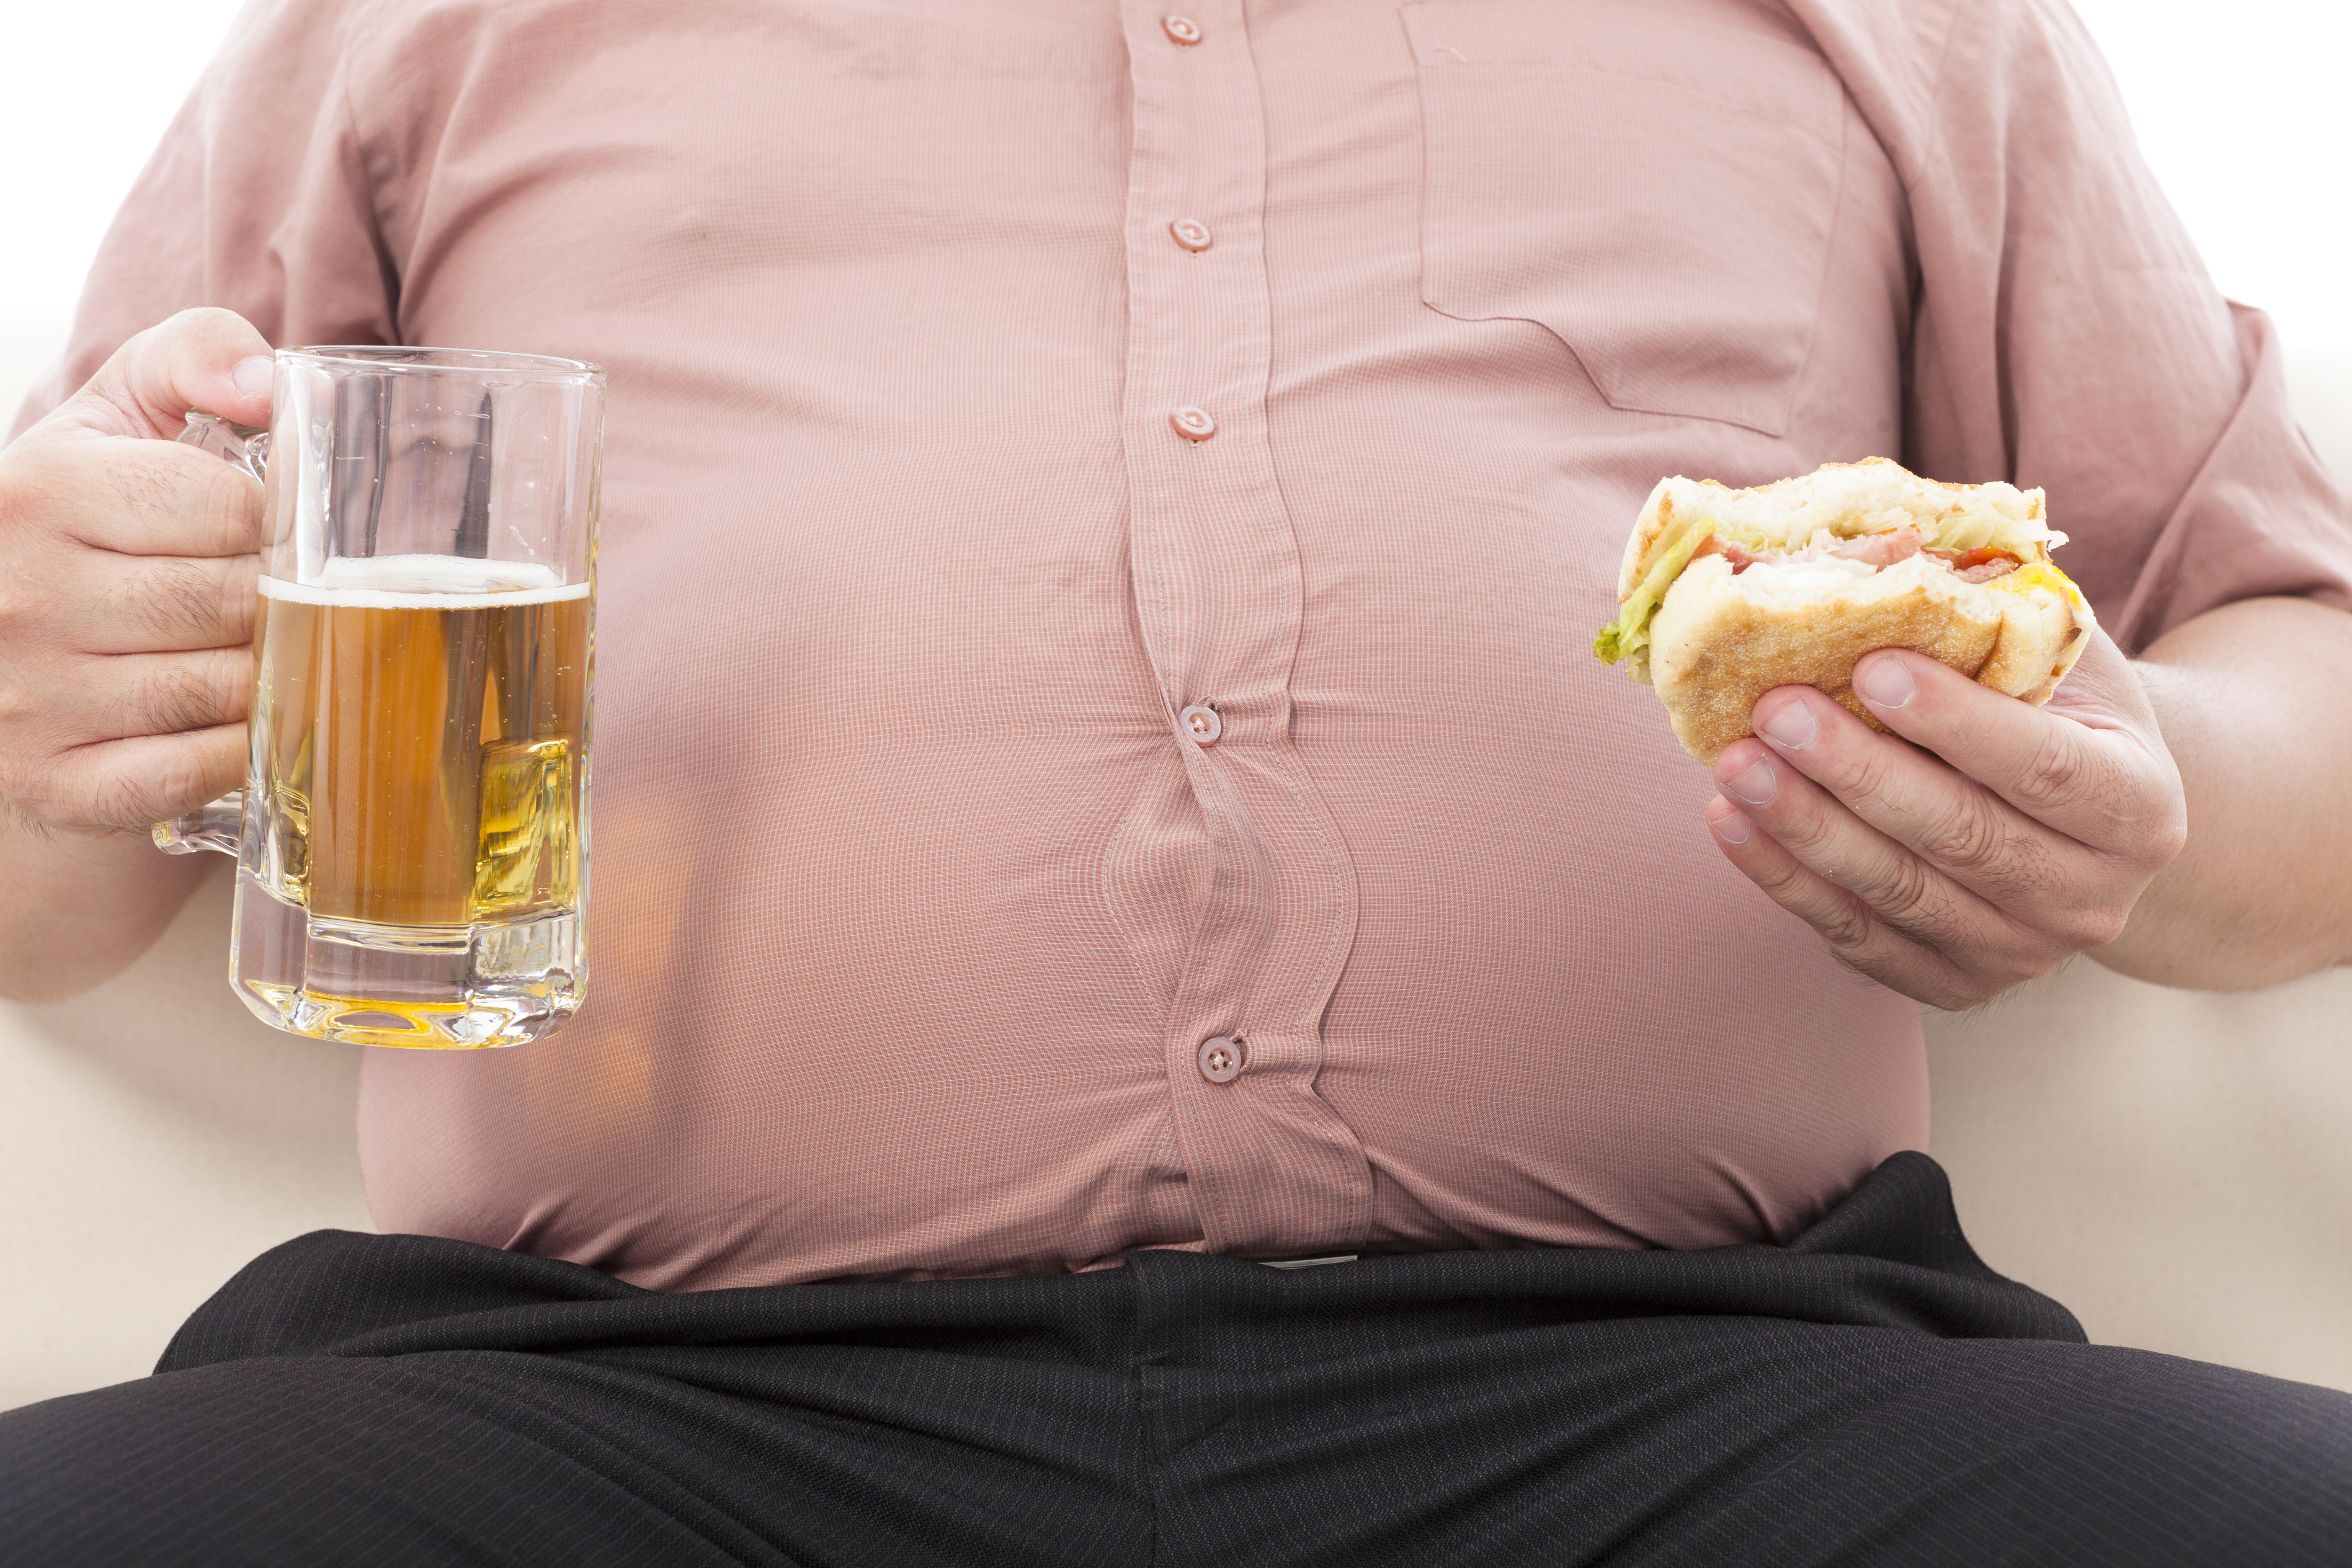 Overweight 20-somethings are at increased risk for